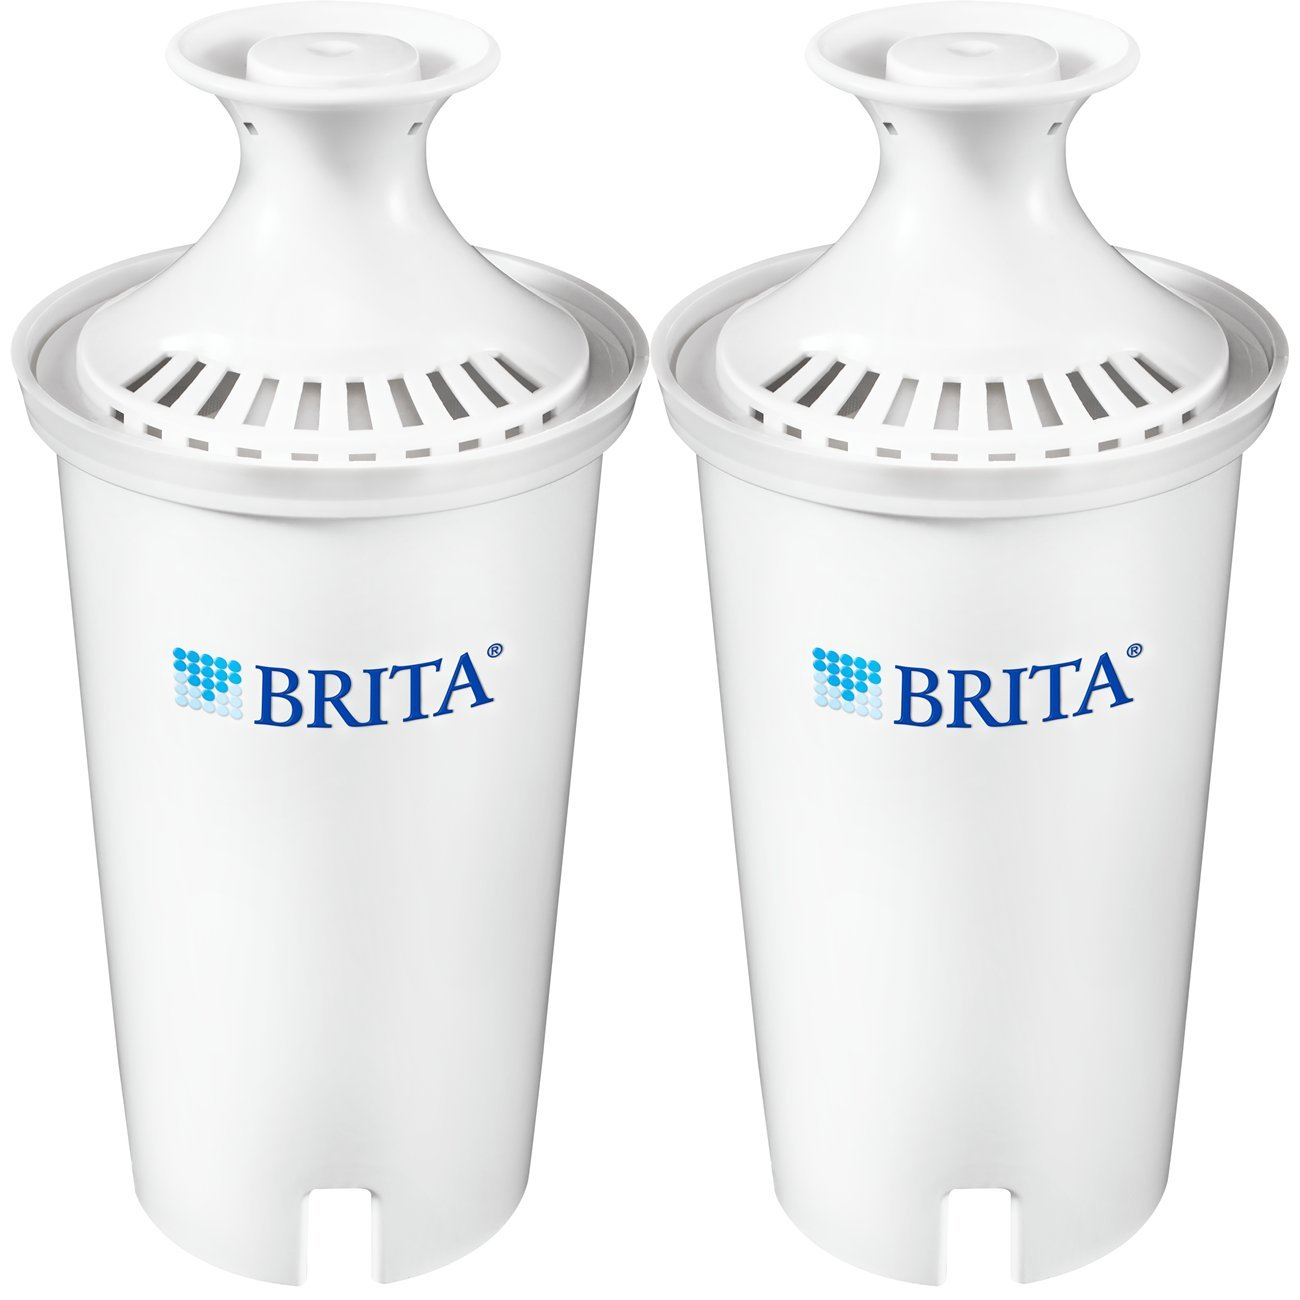 Brita Water Pitcher Filter Replacements 2 Count by Brita (Image #1)